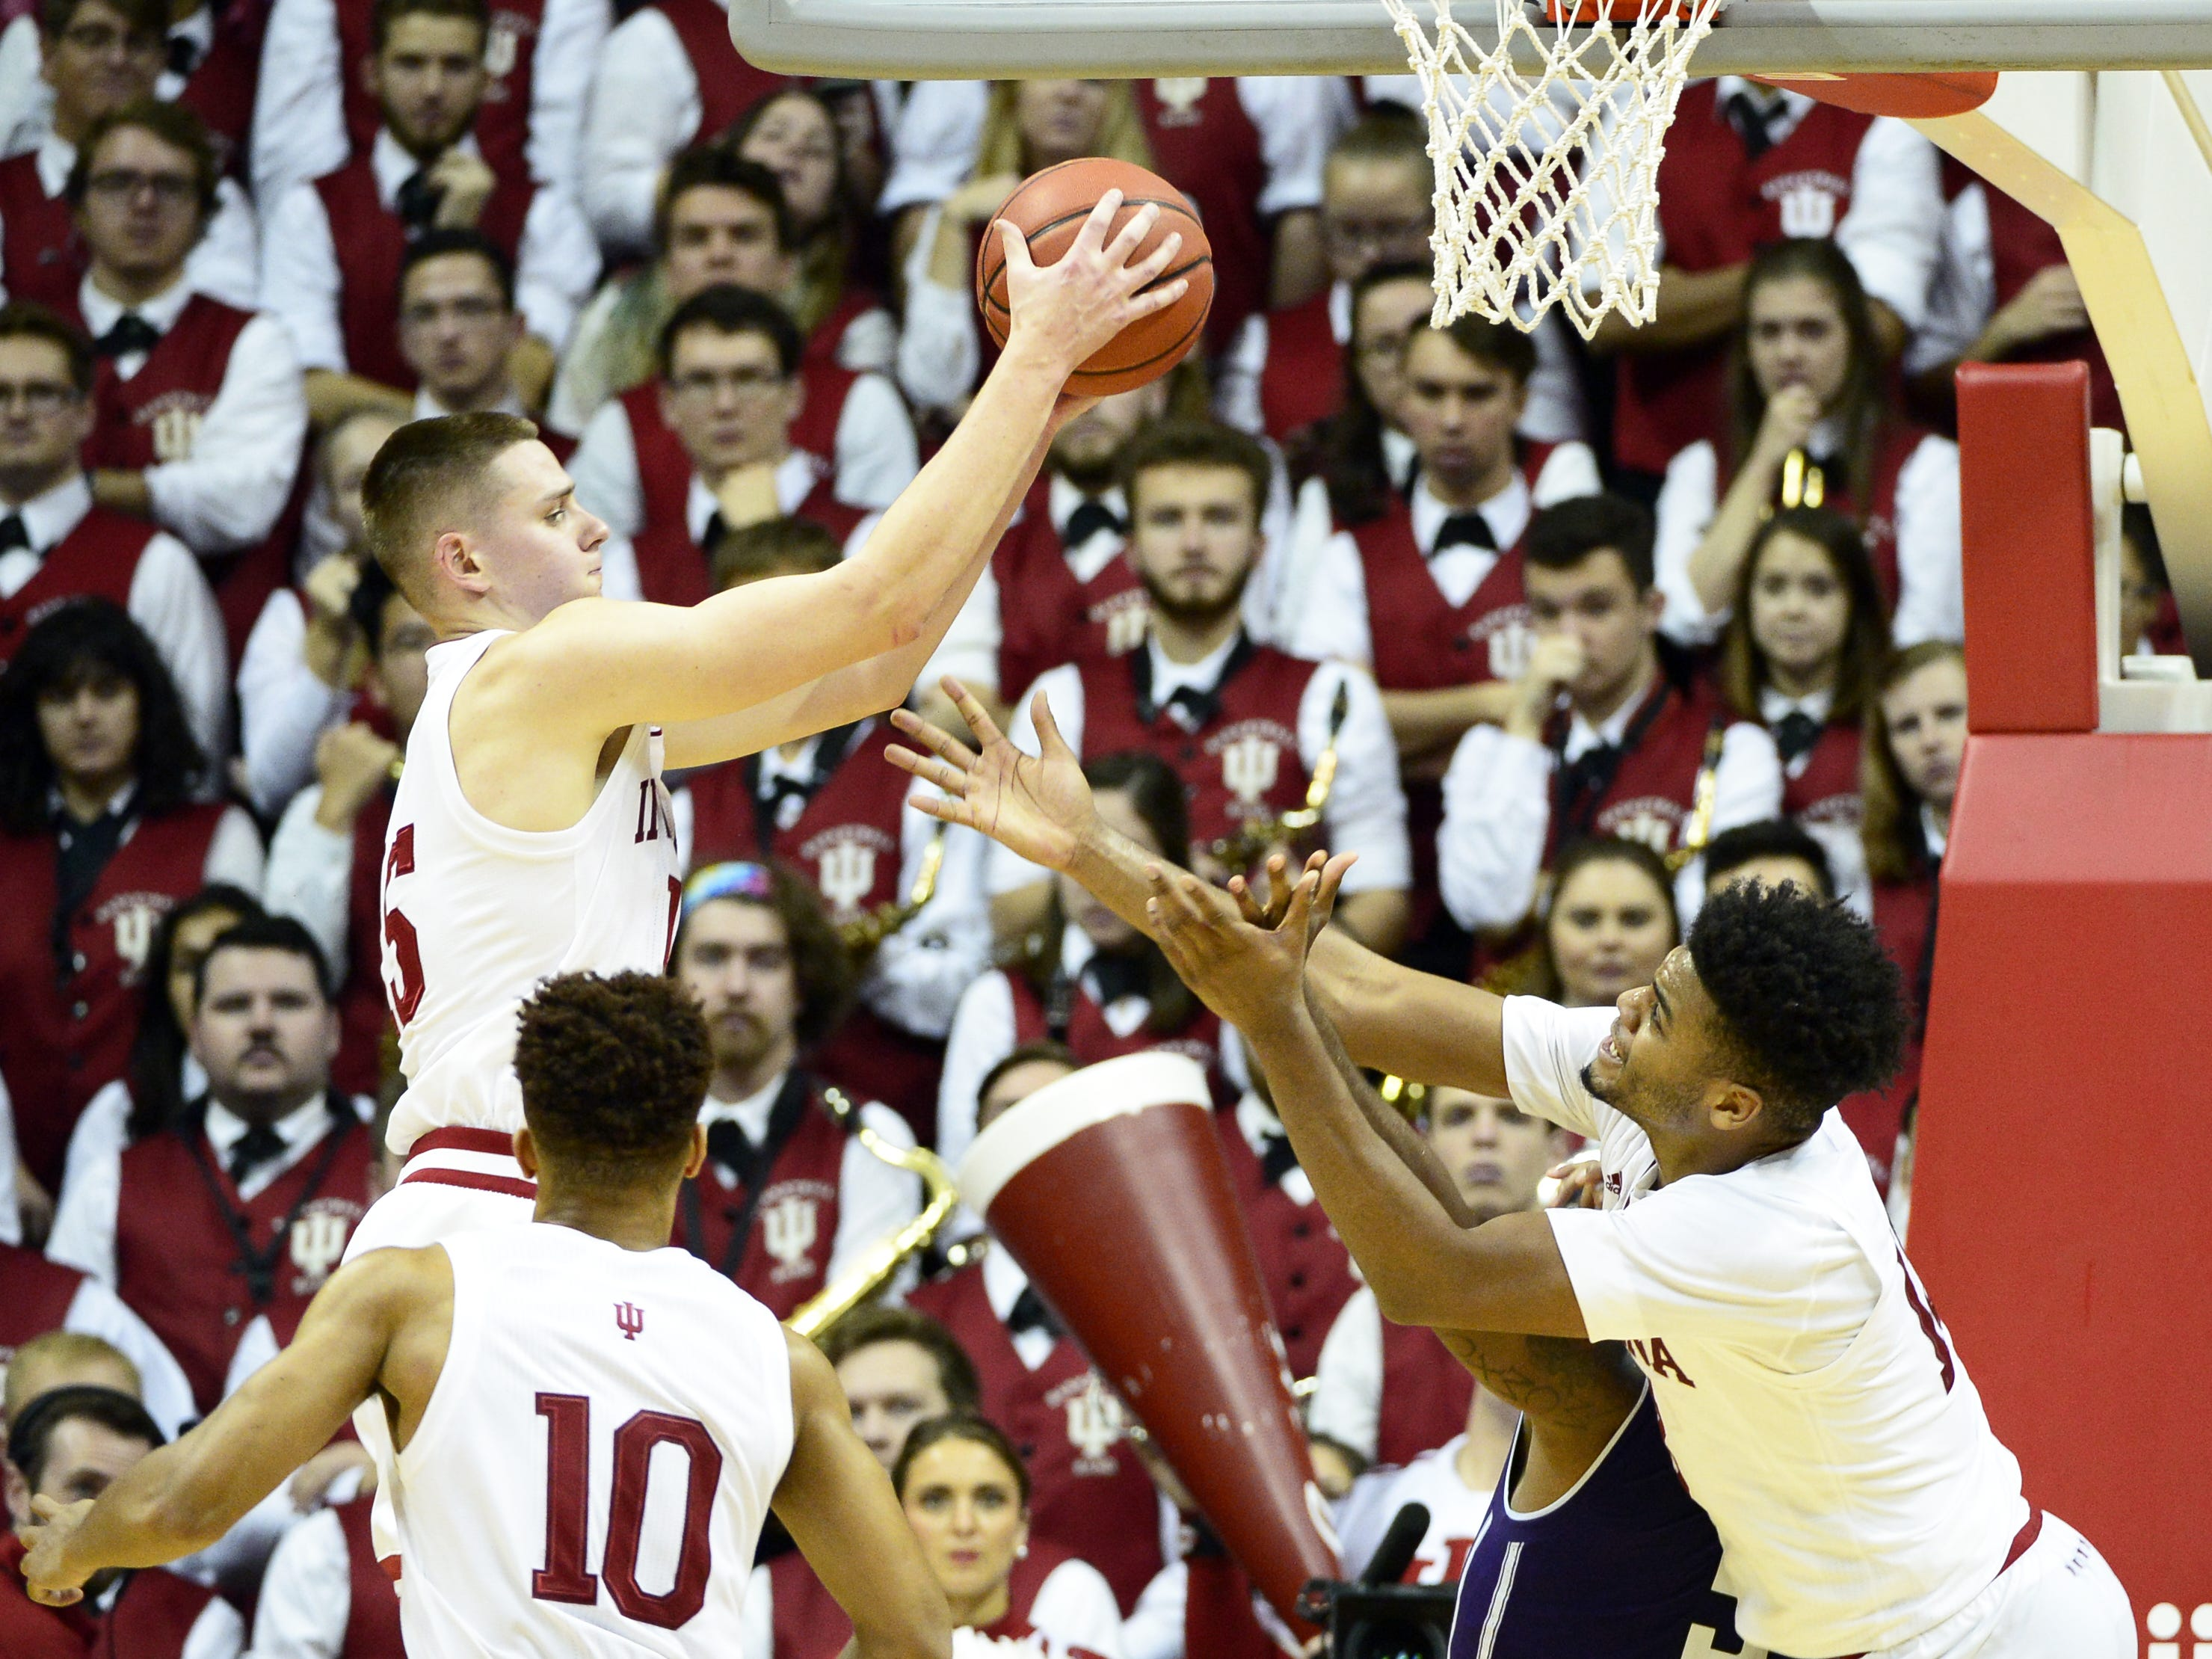 Indiana Hoosiers guard Zach McRoberts (15) rebounds the ball during the game against Northwestern at Simon Skjodt Assembly Hall in Bloomington, Ind., on Saturday, Dec. 1, 2018.